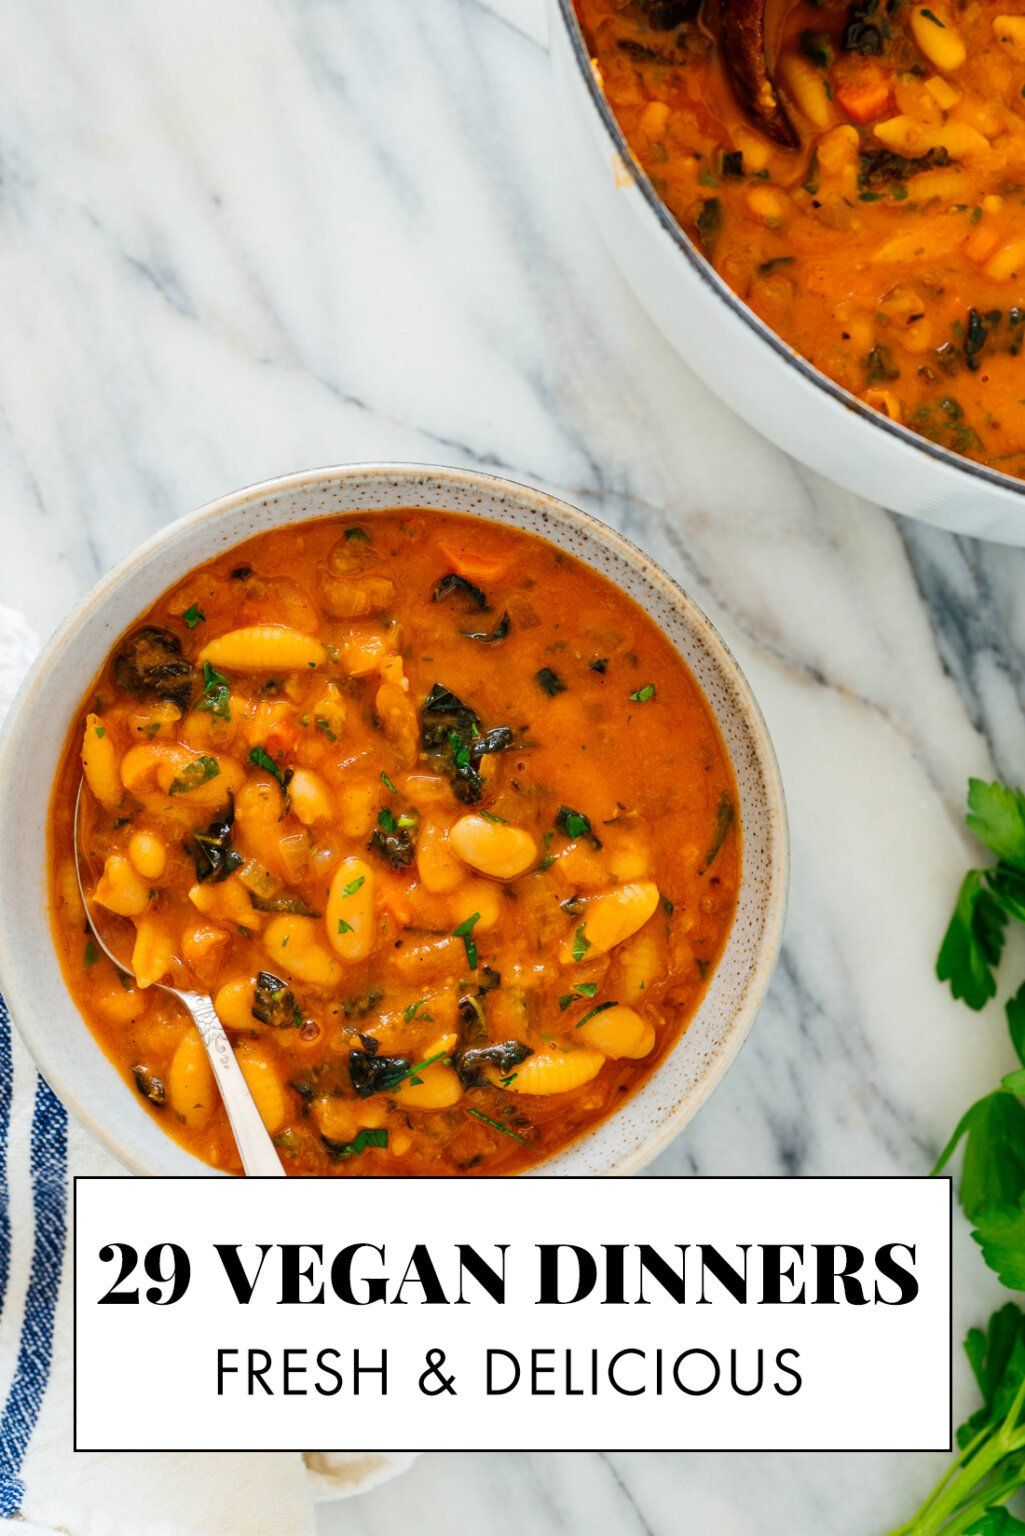 29 Delicious Vegan Dinner Recipes Cookie And Kate In 2020 Vegan Dinners Vegan Dinner Recipes Recipes